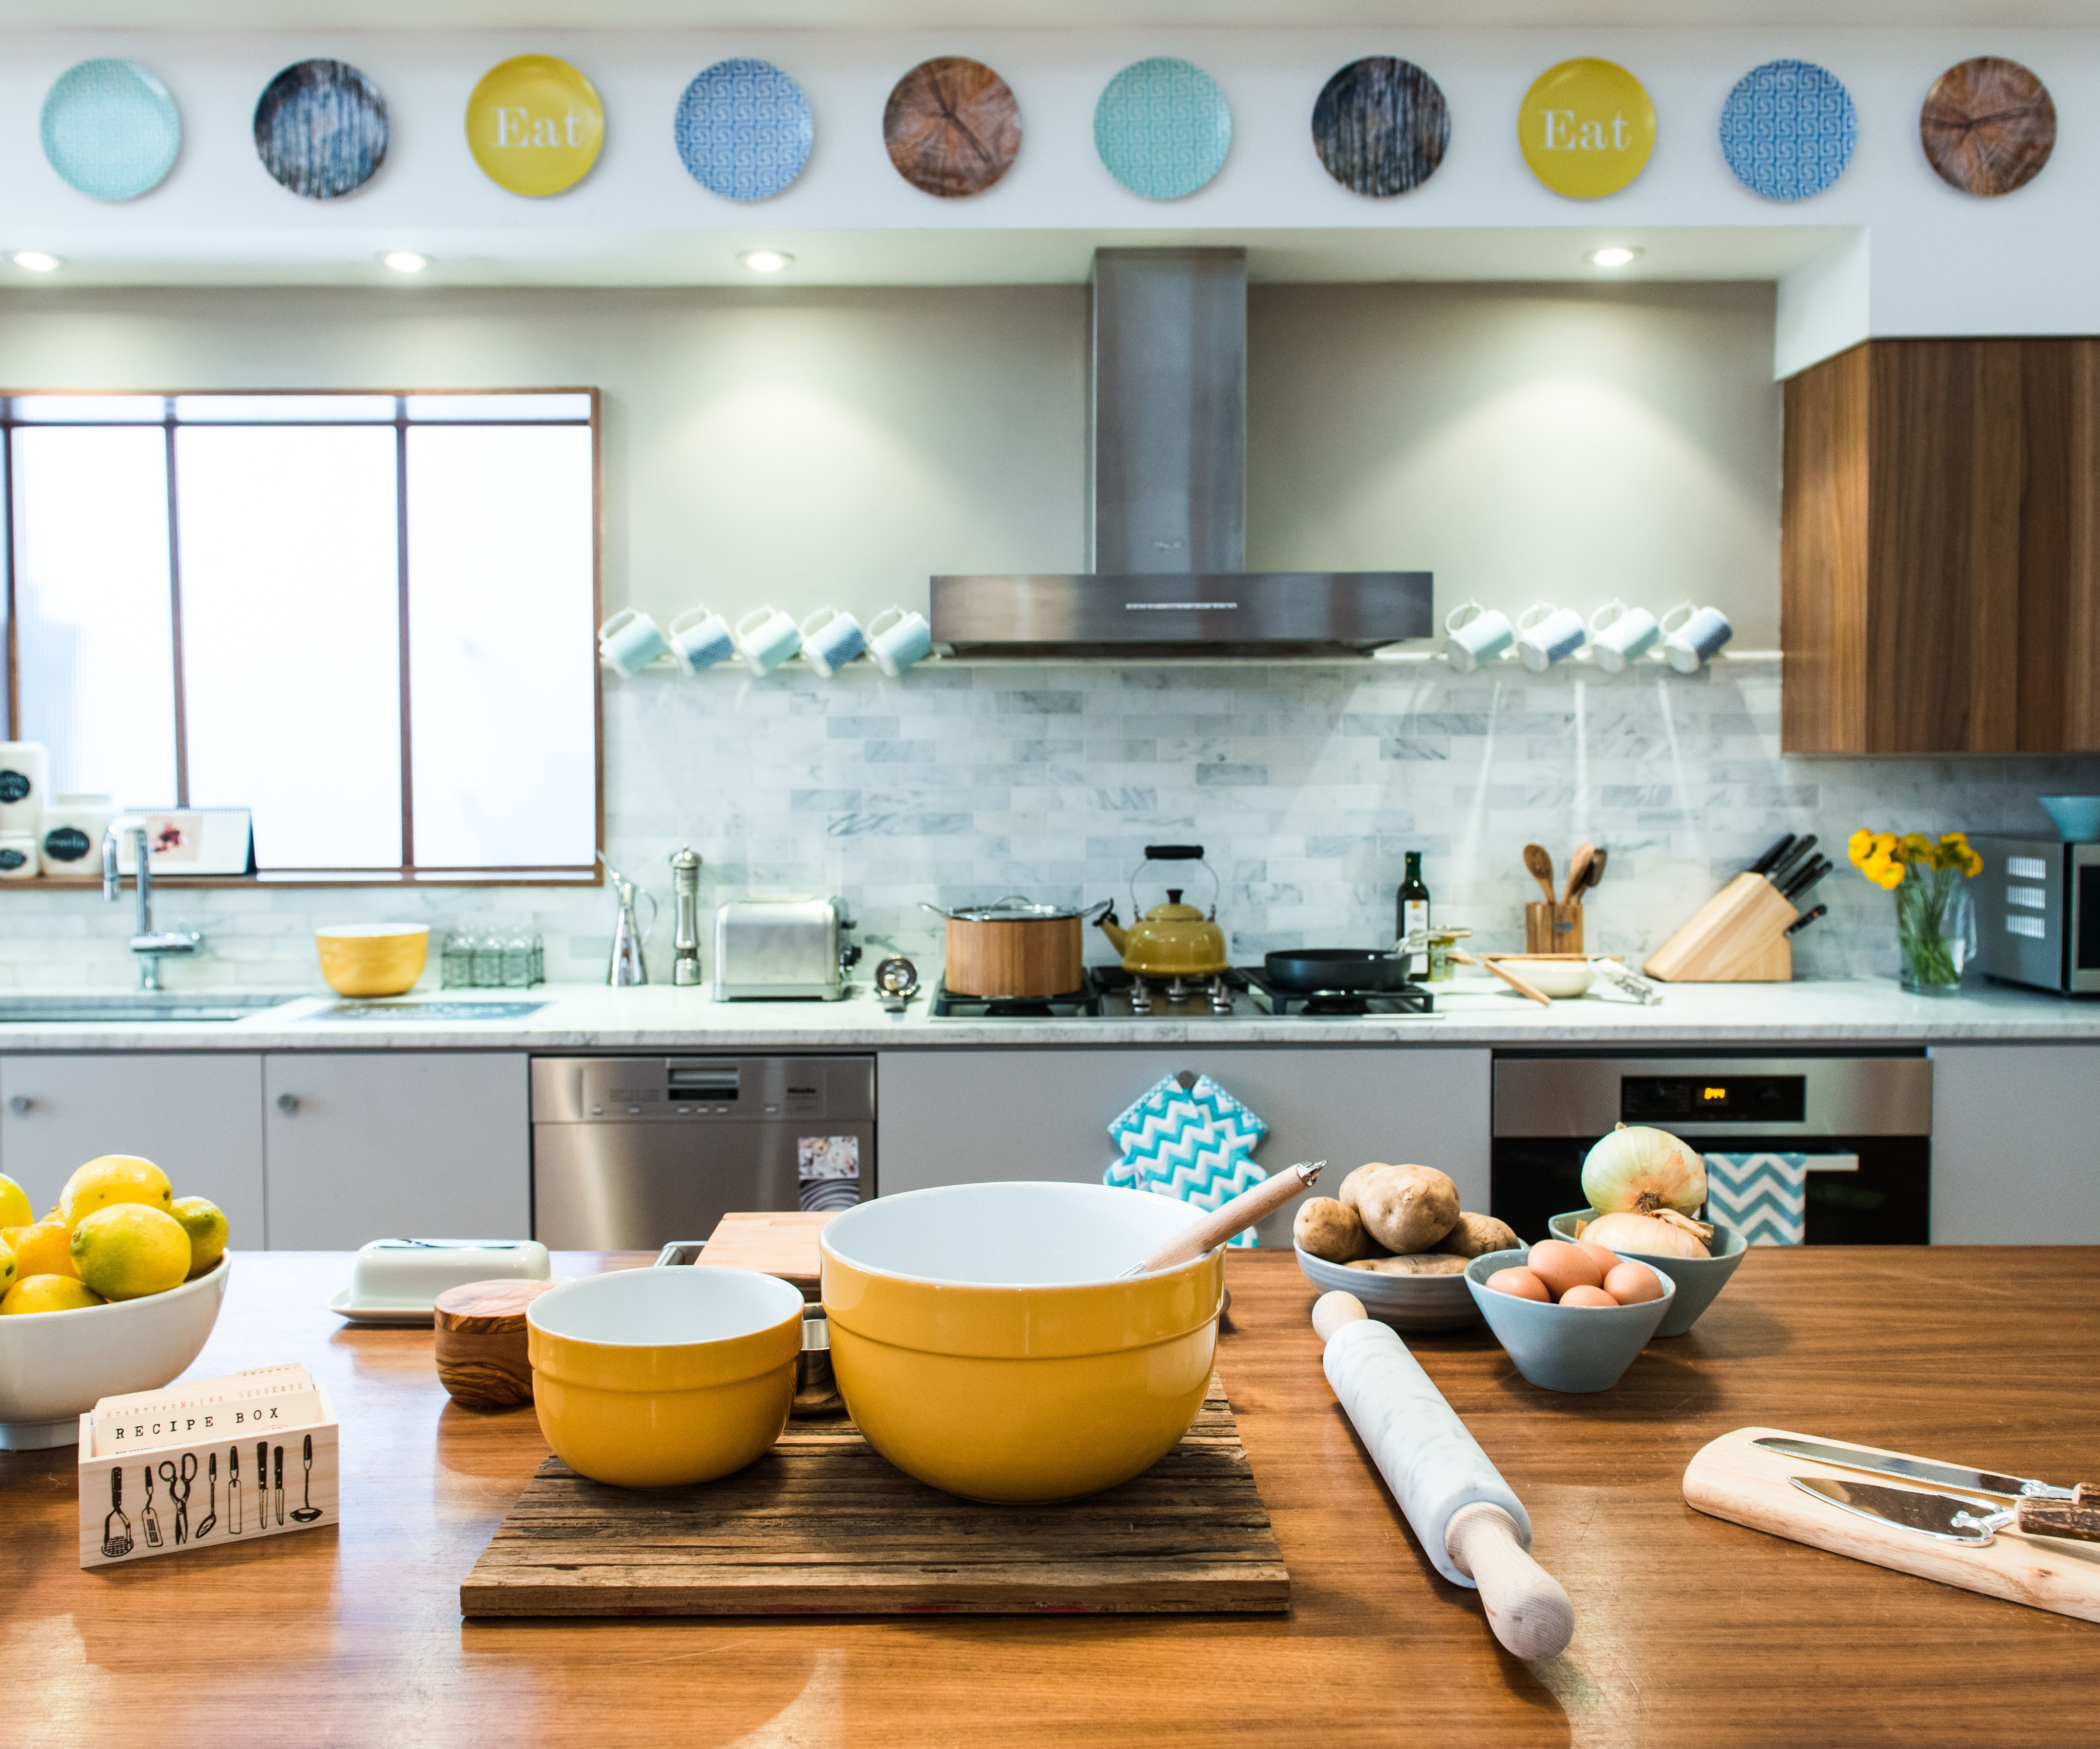 We loved Cat Cora\u0027s eye for minimalistic kitchen design. Use personalized plates for decorative pieces.   Shutterfly.com #SFLYbydesign & We loved Cat Cora\u0027s eye for minimalistic kitchen design. Use ...